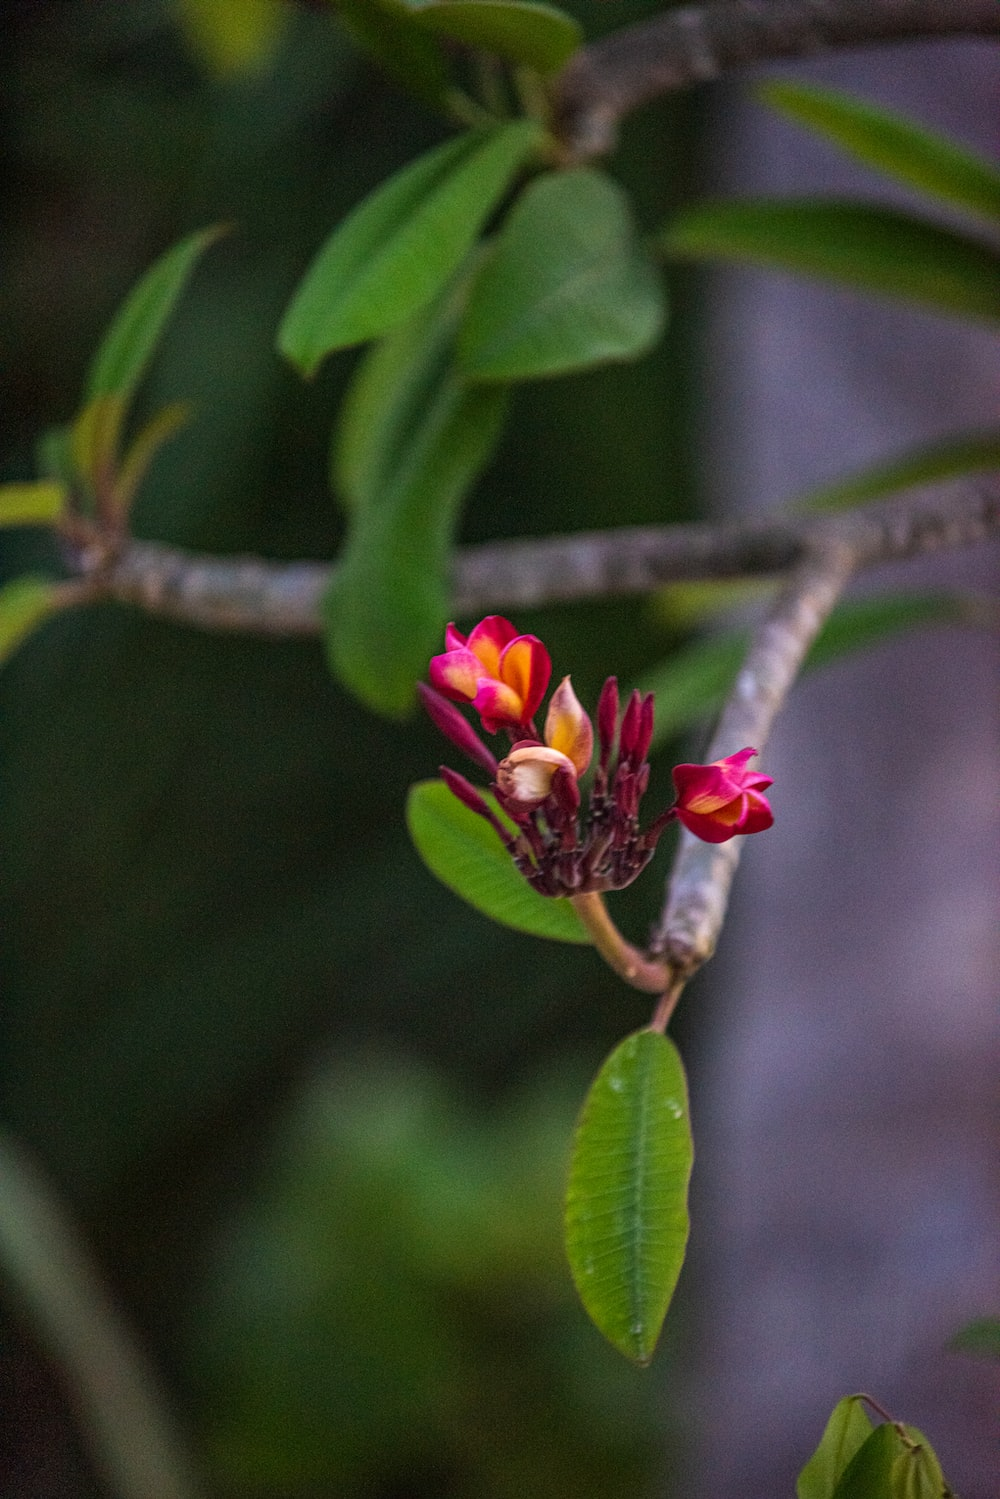 red flower on brown tree branch